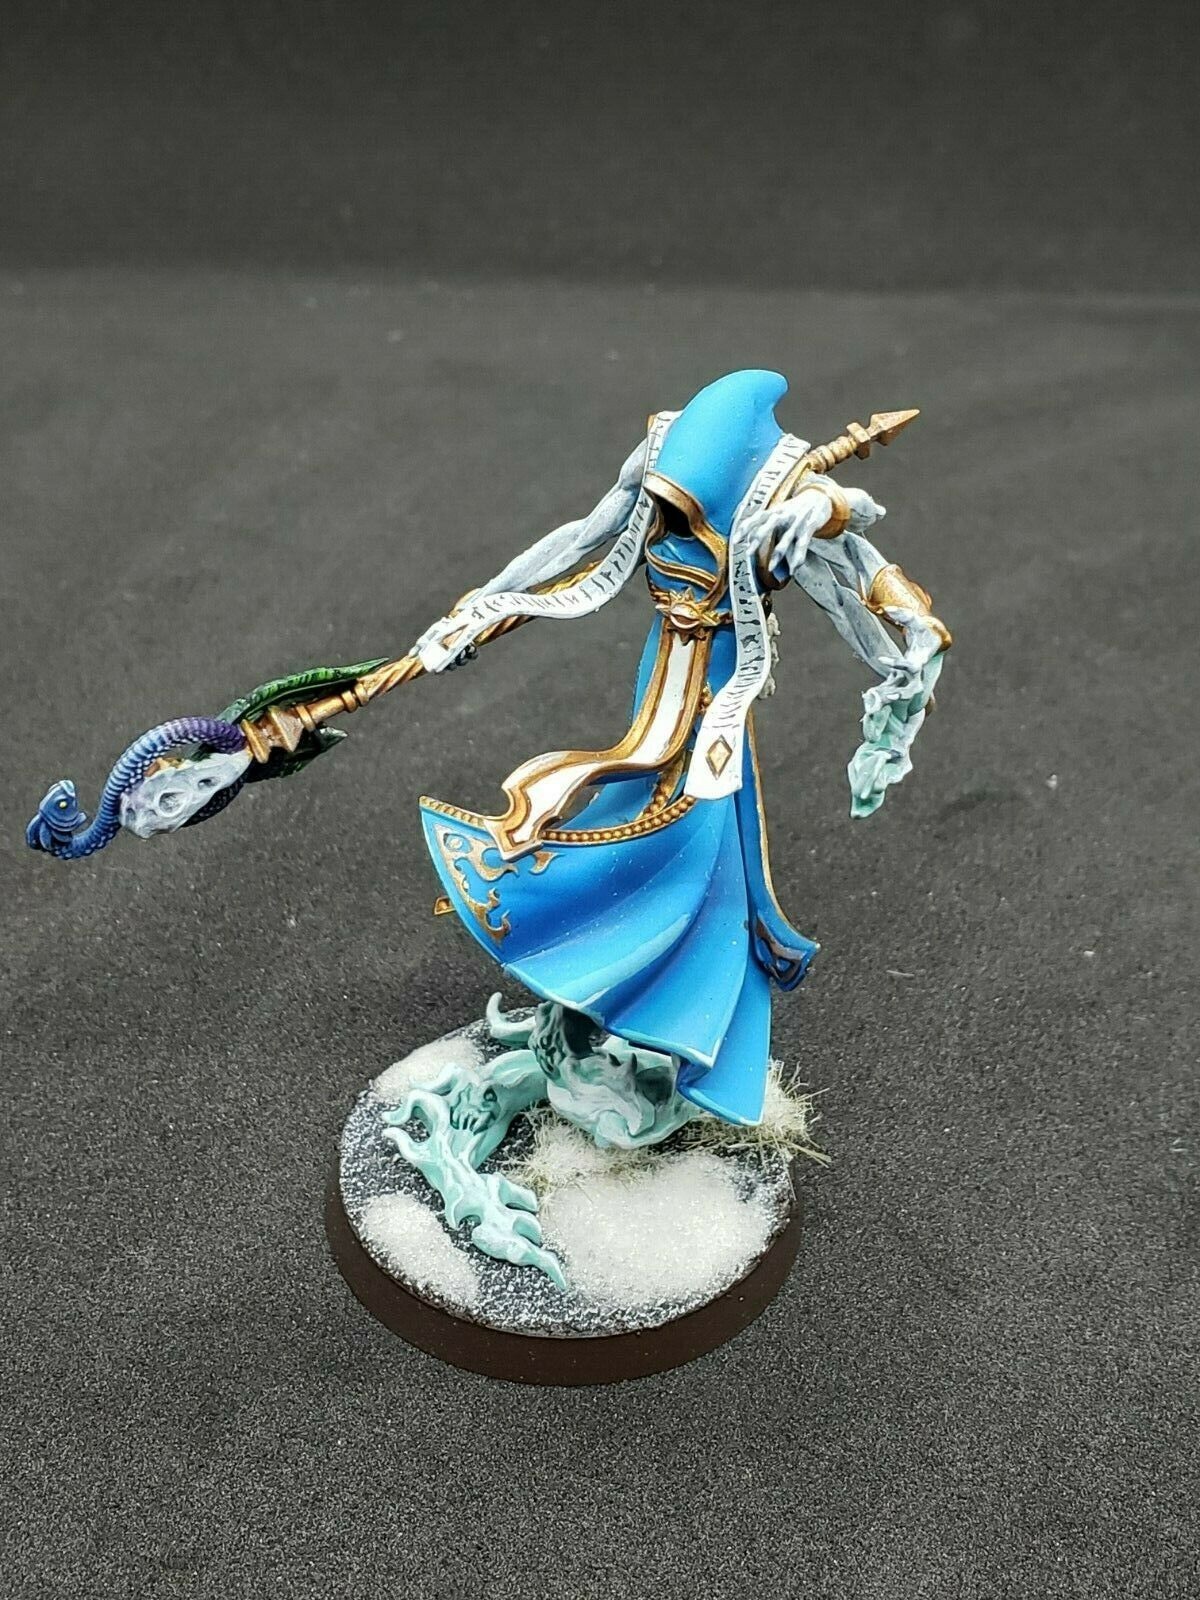 Age of Sigmar Warhammer 40k Daemons of Tzeentch Changeling Pro Painted